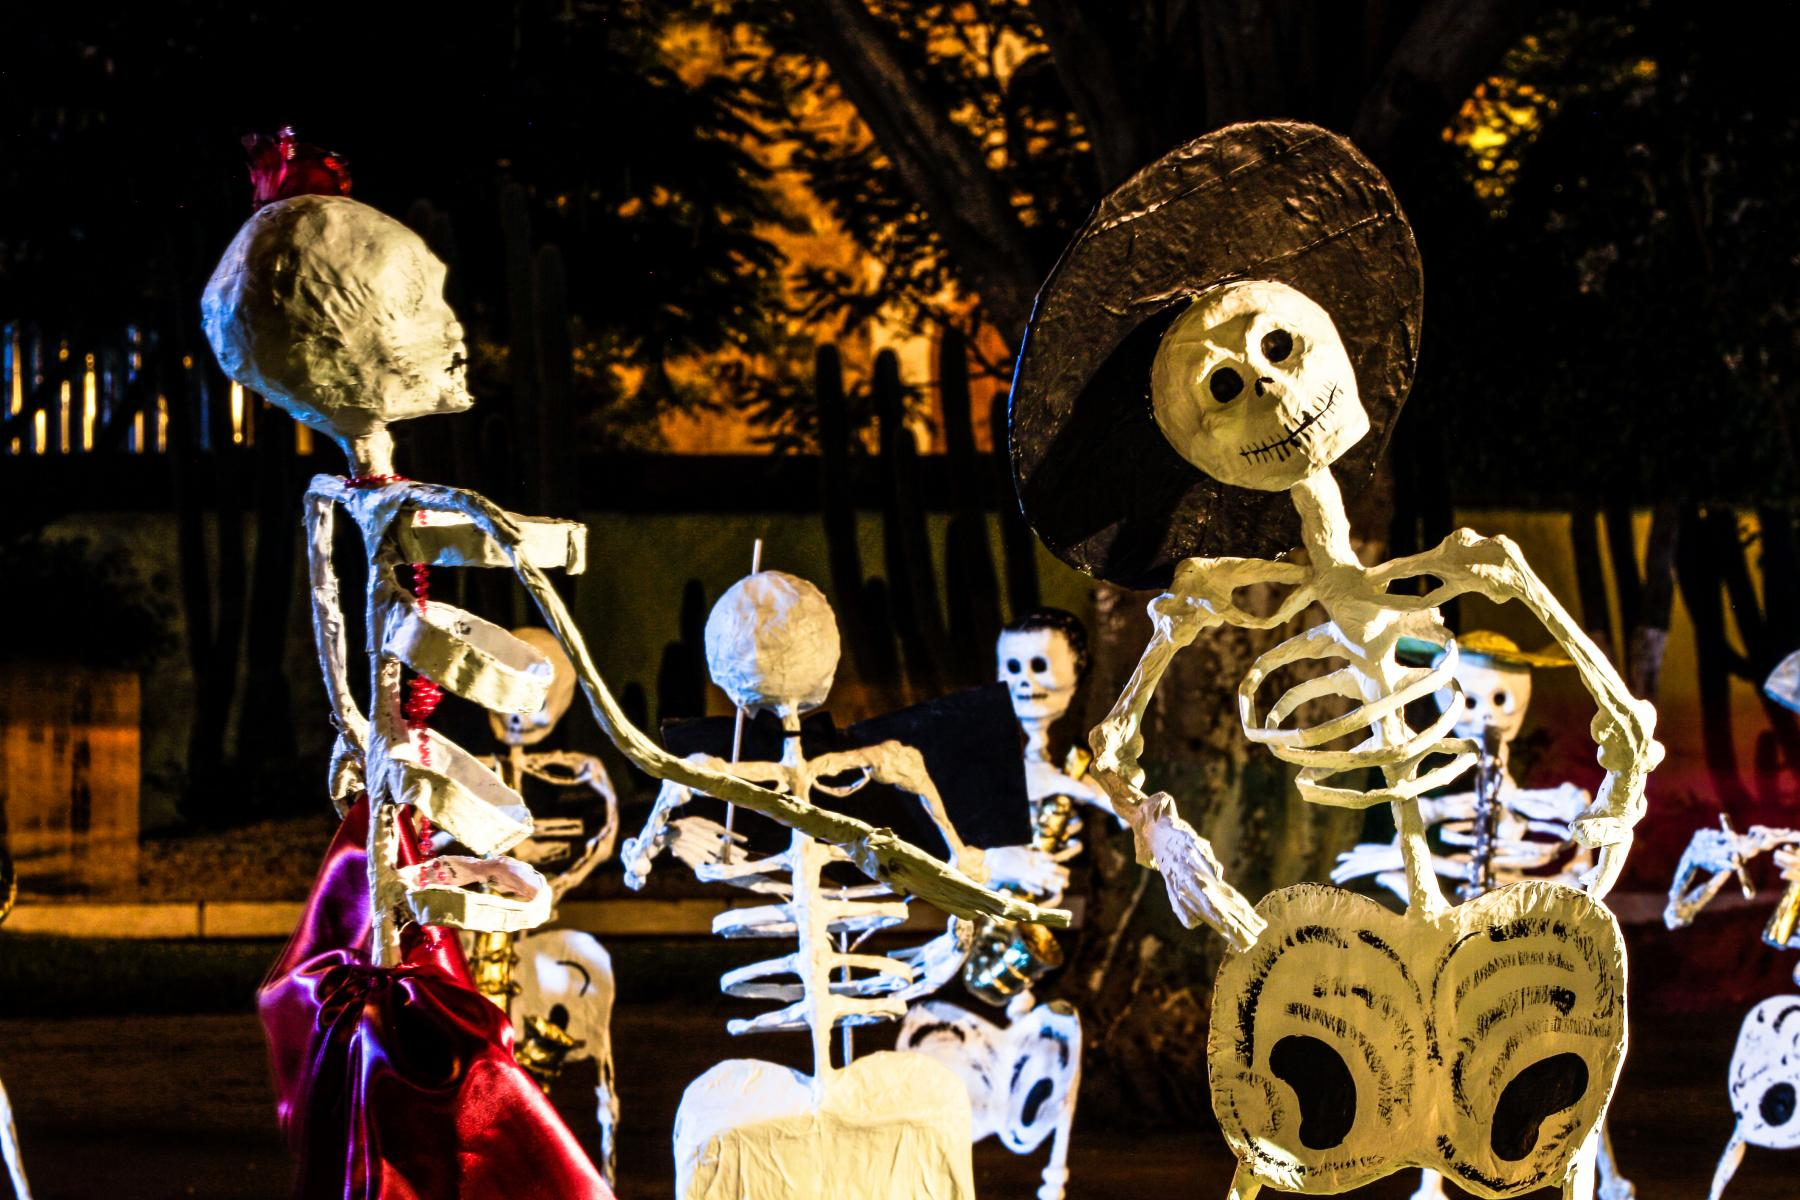 Skeletons at Day of the Dead